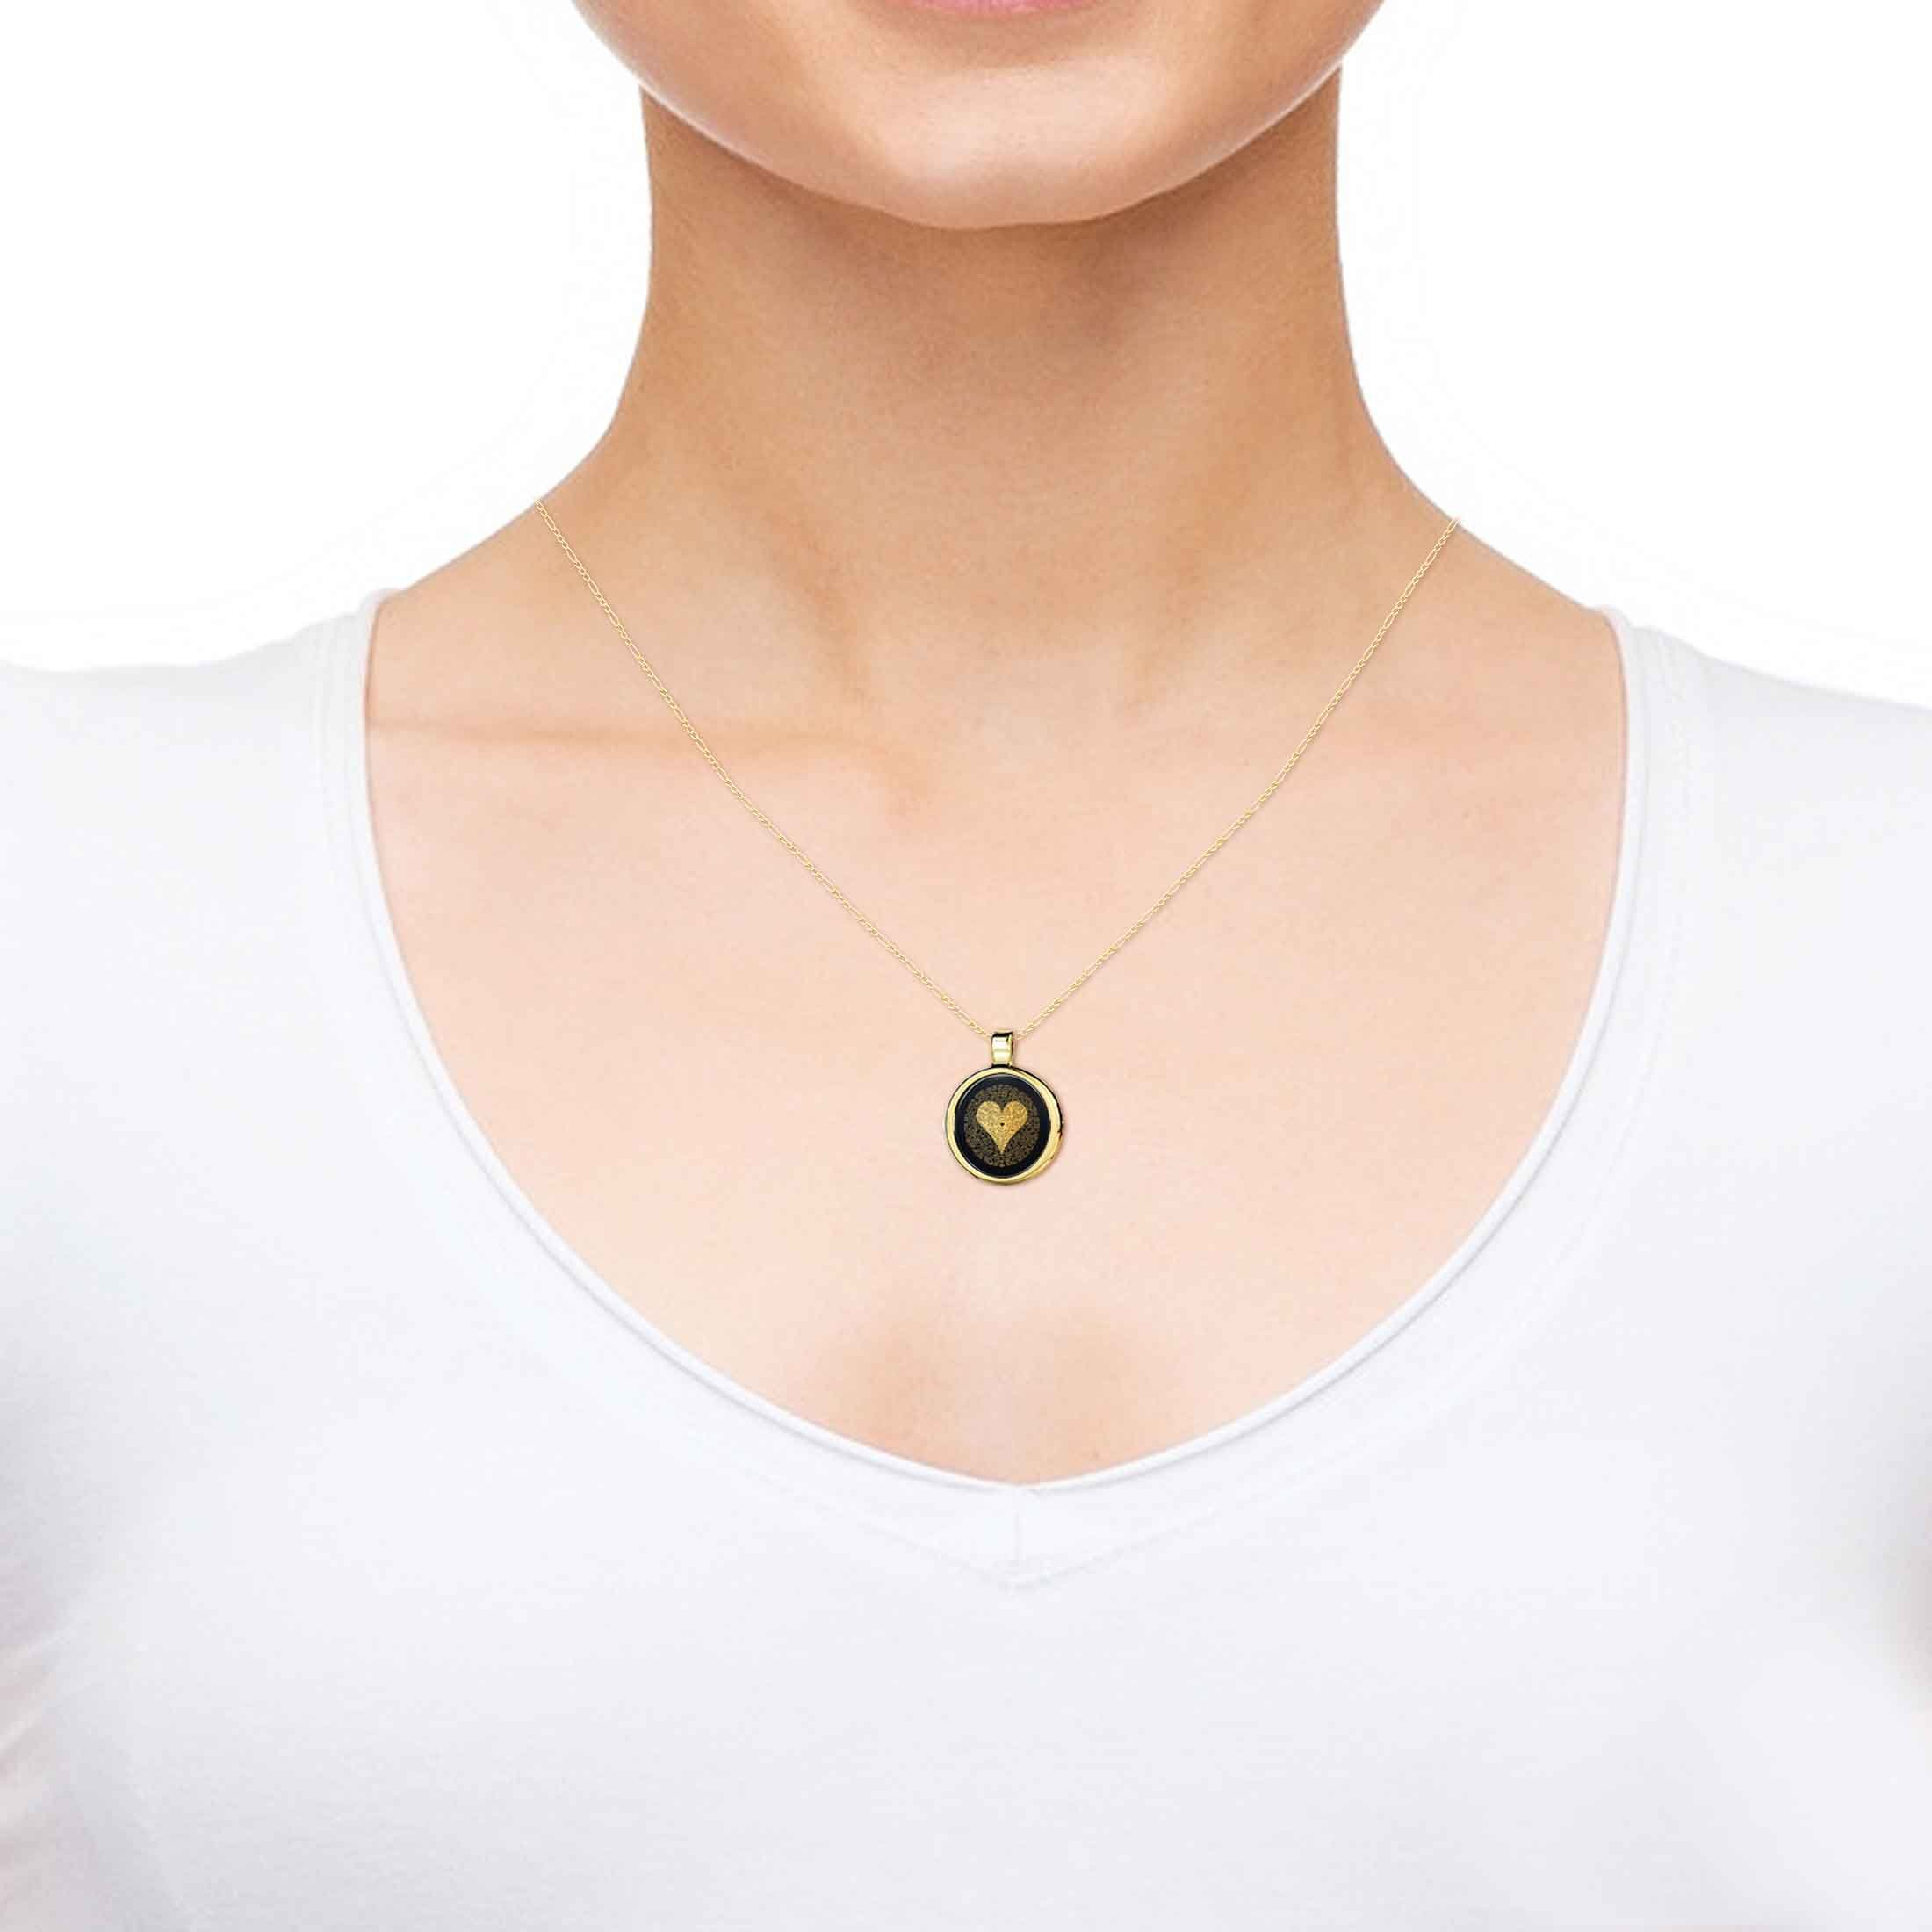 14k Yellow Gold I Love You Necklace 24k Gold Inscribed 120 Languages Onyx Pendant, 18'' Gold Filled Chain by Nano Jewelry (Image #4)